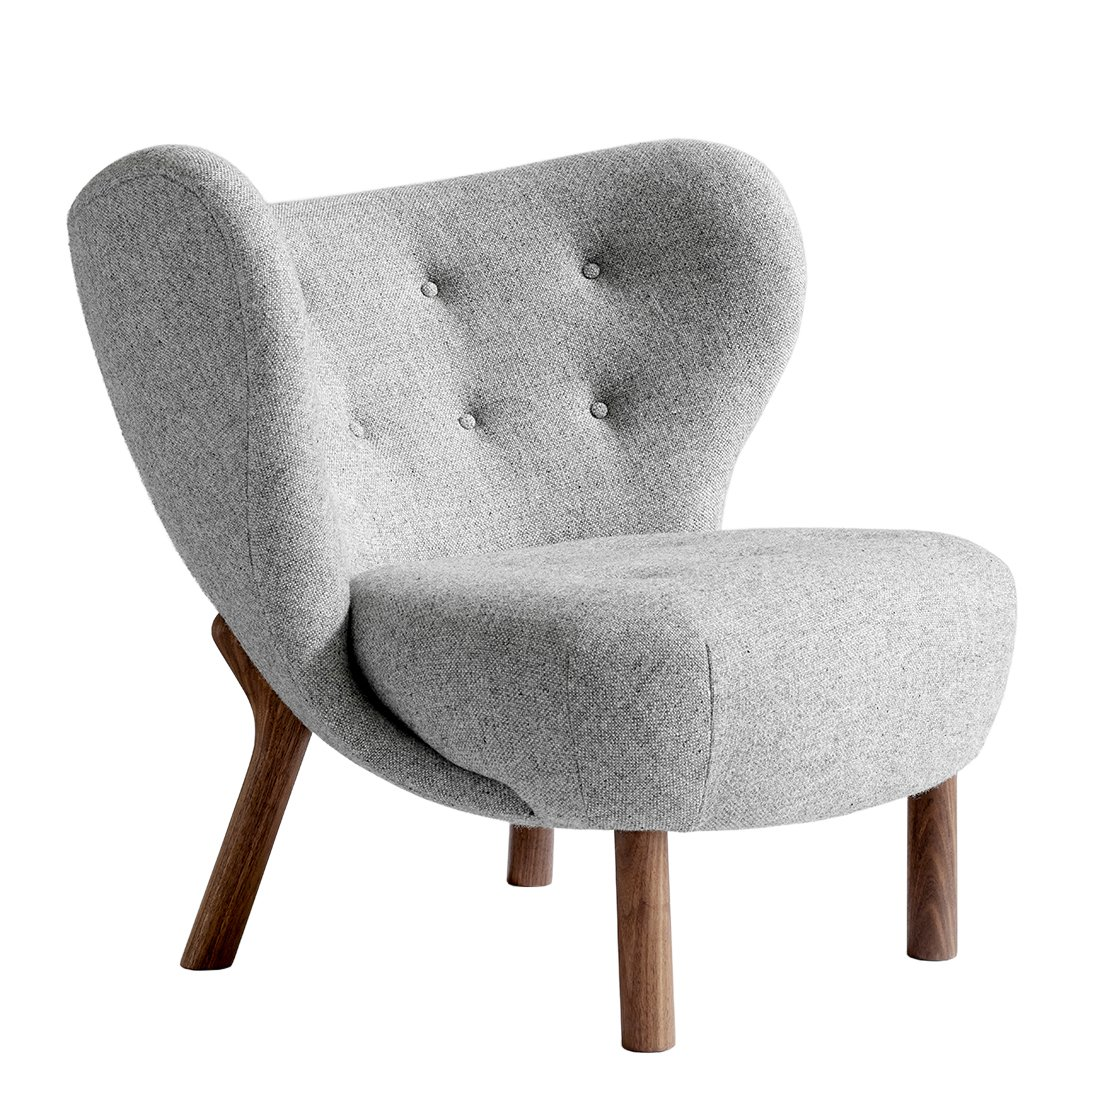 &tradition Little Petra Fauteuil Space Copenhagen